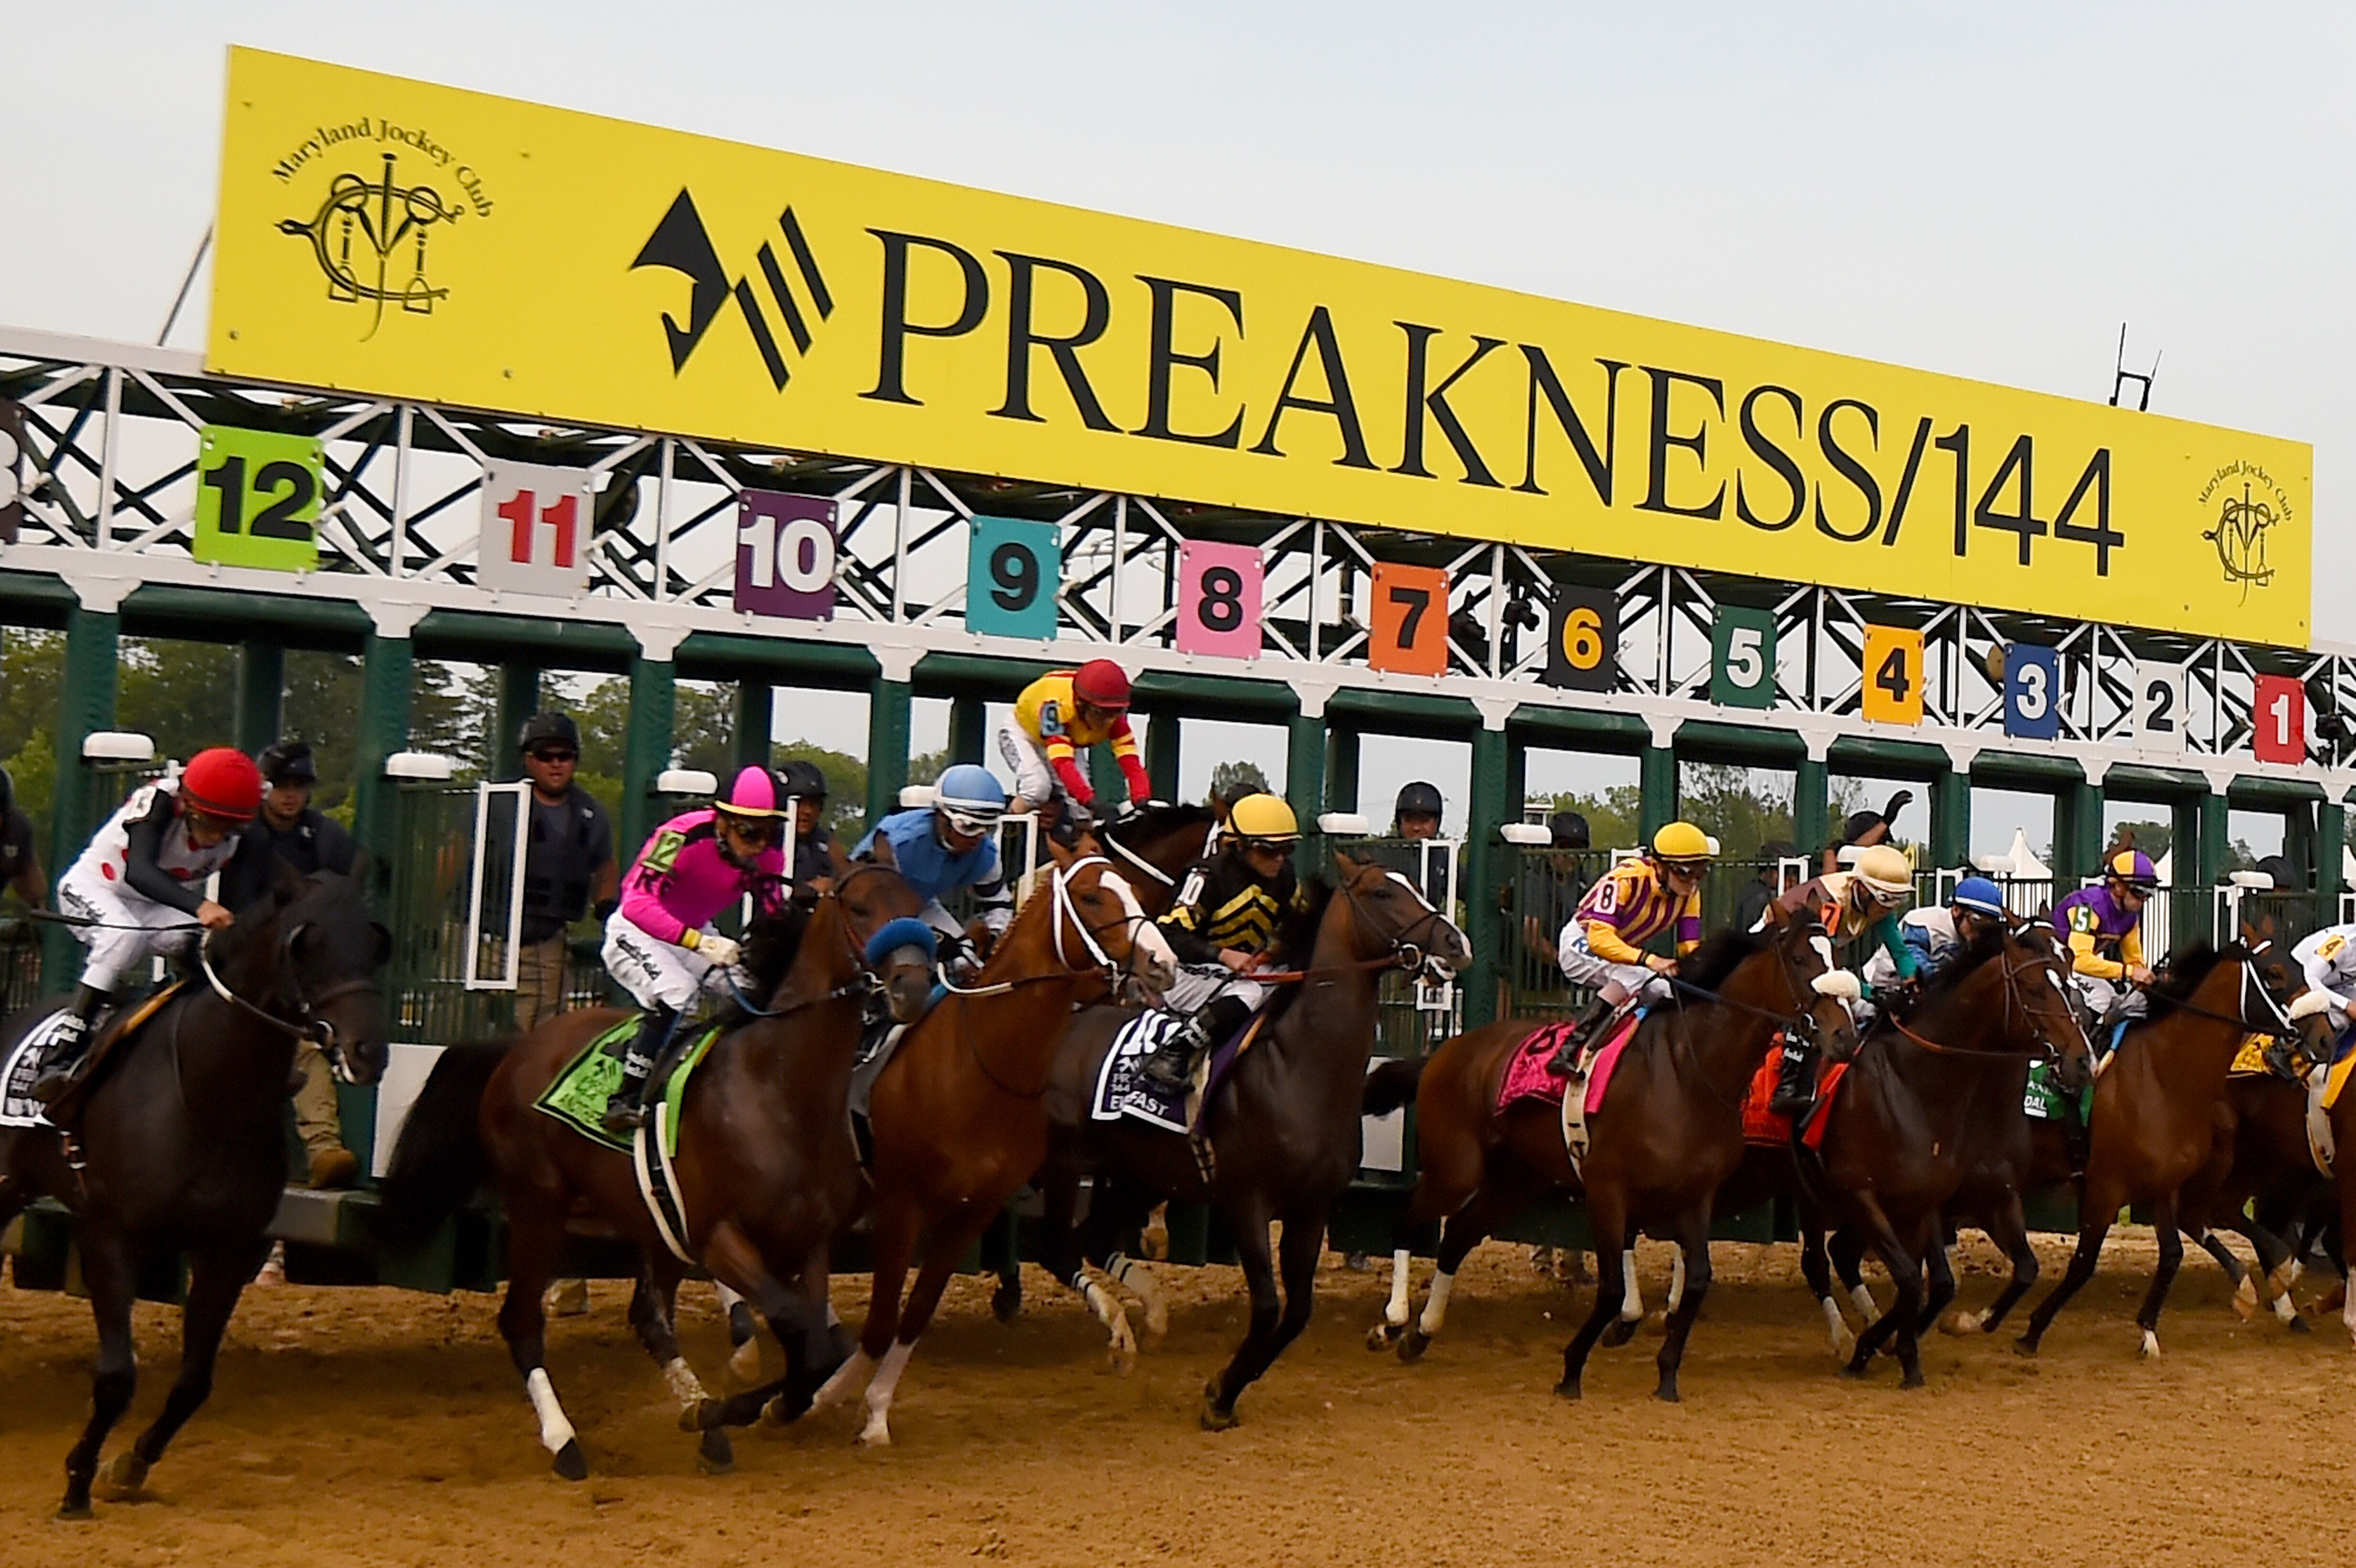 After shaking the jockey John Velazquez right out of the grid, Bodexpress finished the Preakness Stakes Saturday solo.